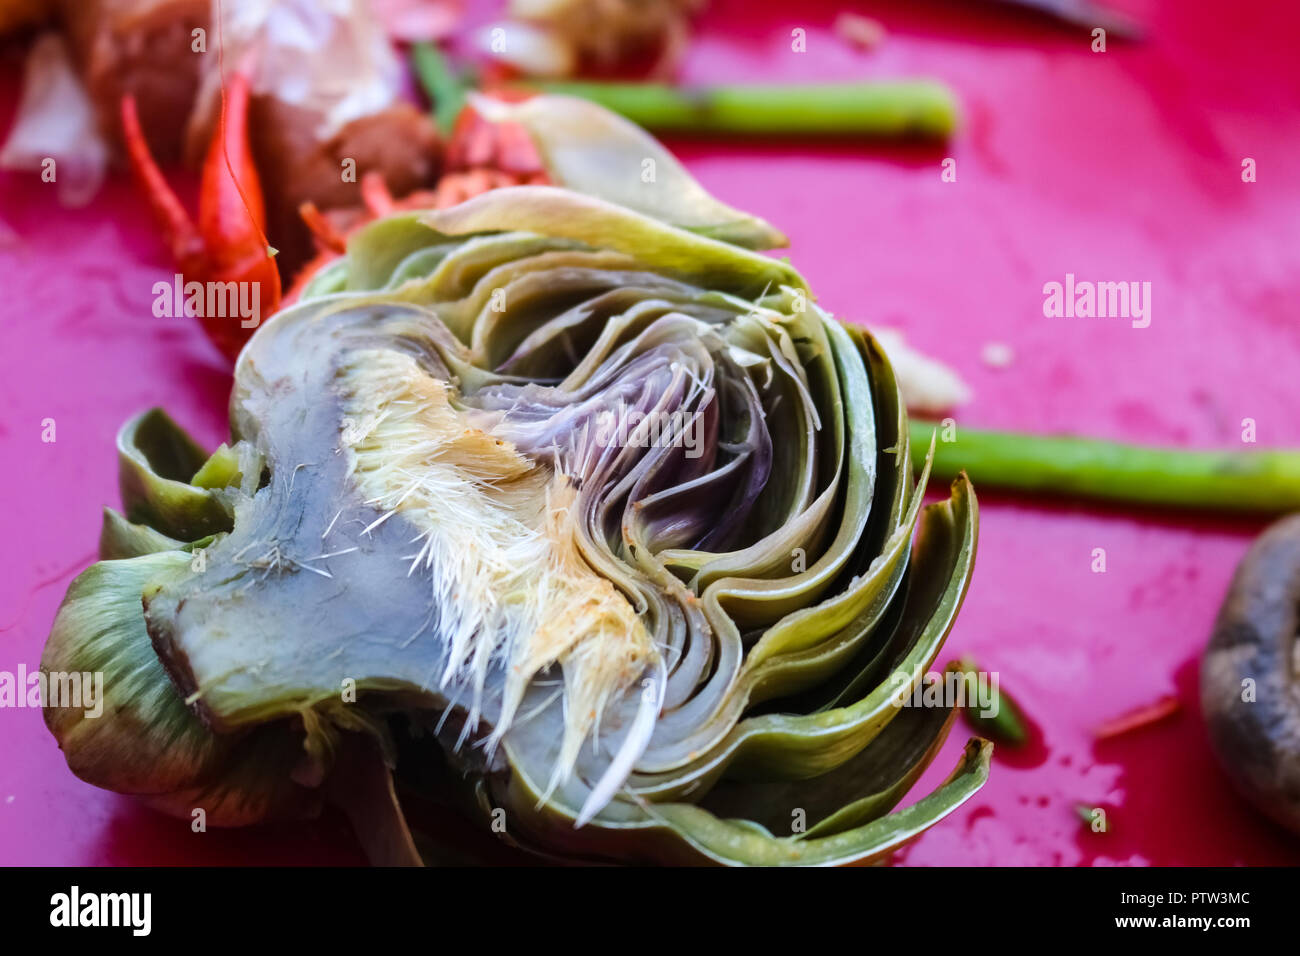 Boiled artichoke cut in half lying on pink tablecloth with mushroom and asparagus at crawfish boil - selective focus Stock Photo